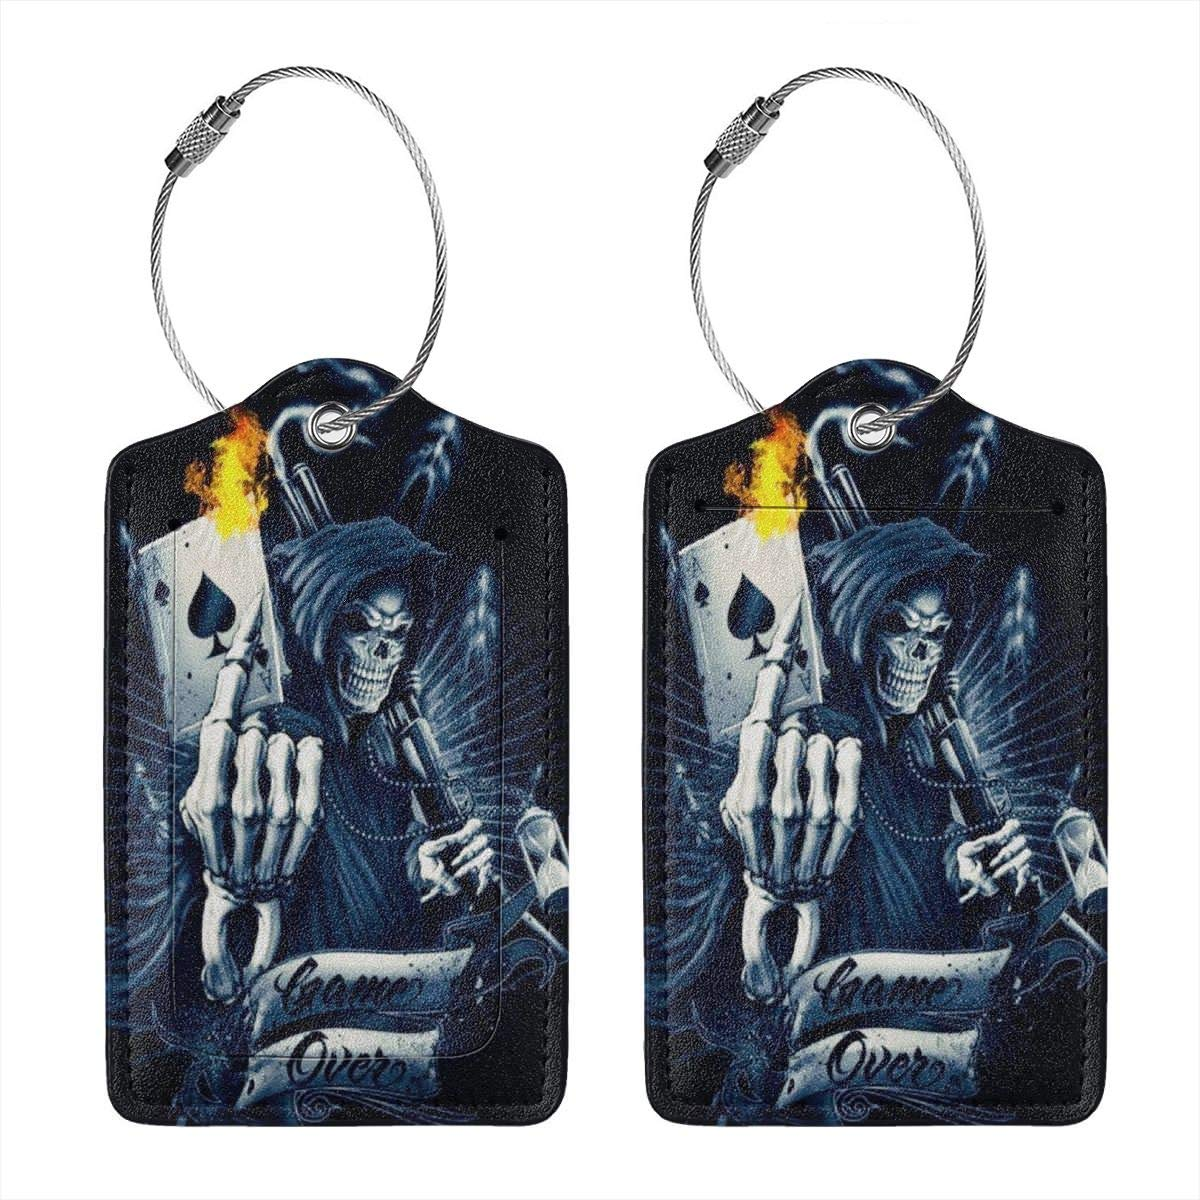 Leather Luggage Tag Skull Game Over Fire Poker Cards Luggage Tags For Suitcase Travel Lover Gifts For Men Women 4 PCS